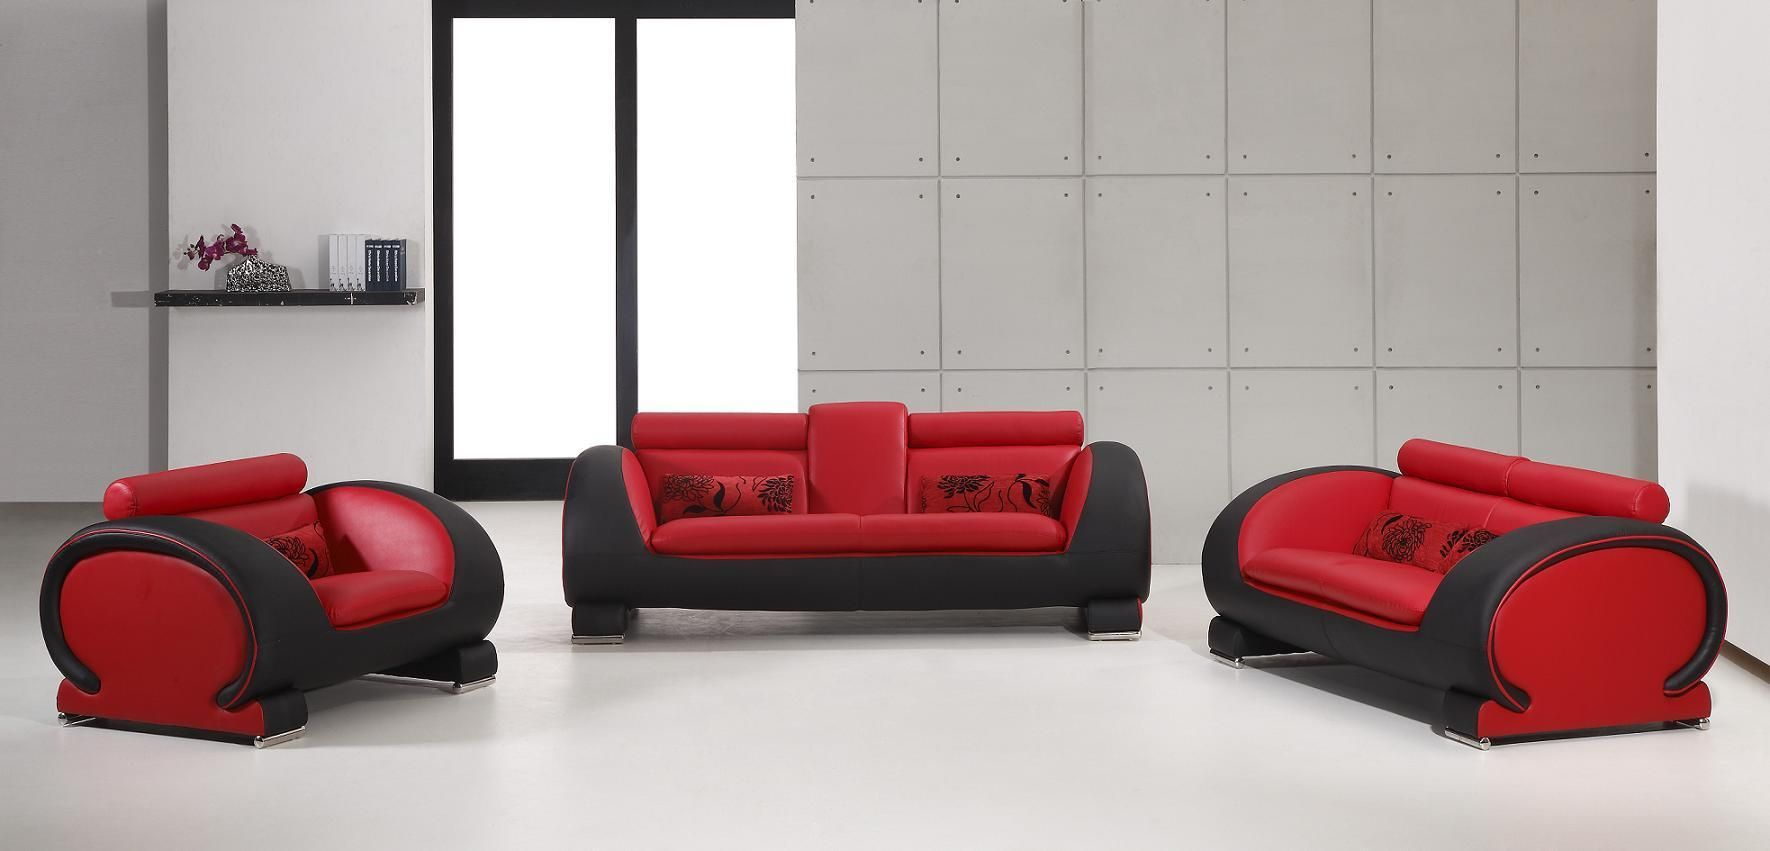 Incredible 2811 Black And Red Bonded Leather Sofa Set My Style Creativecarmelina Interior Chair Design Creativecarmelinacom